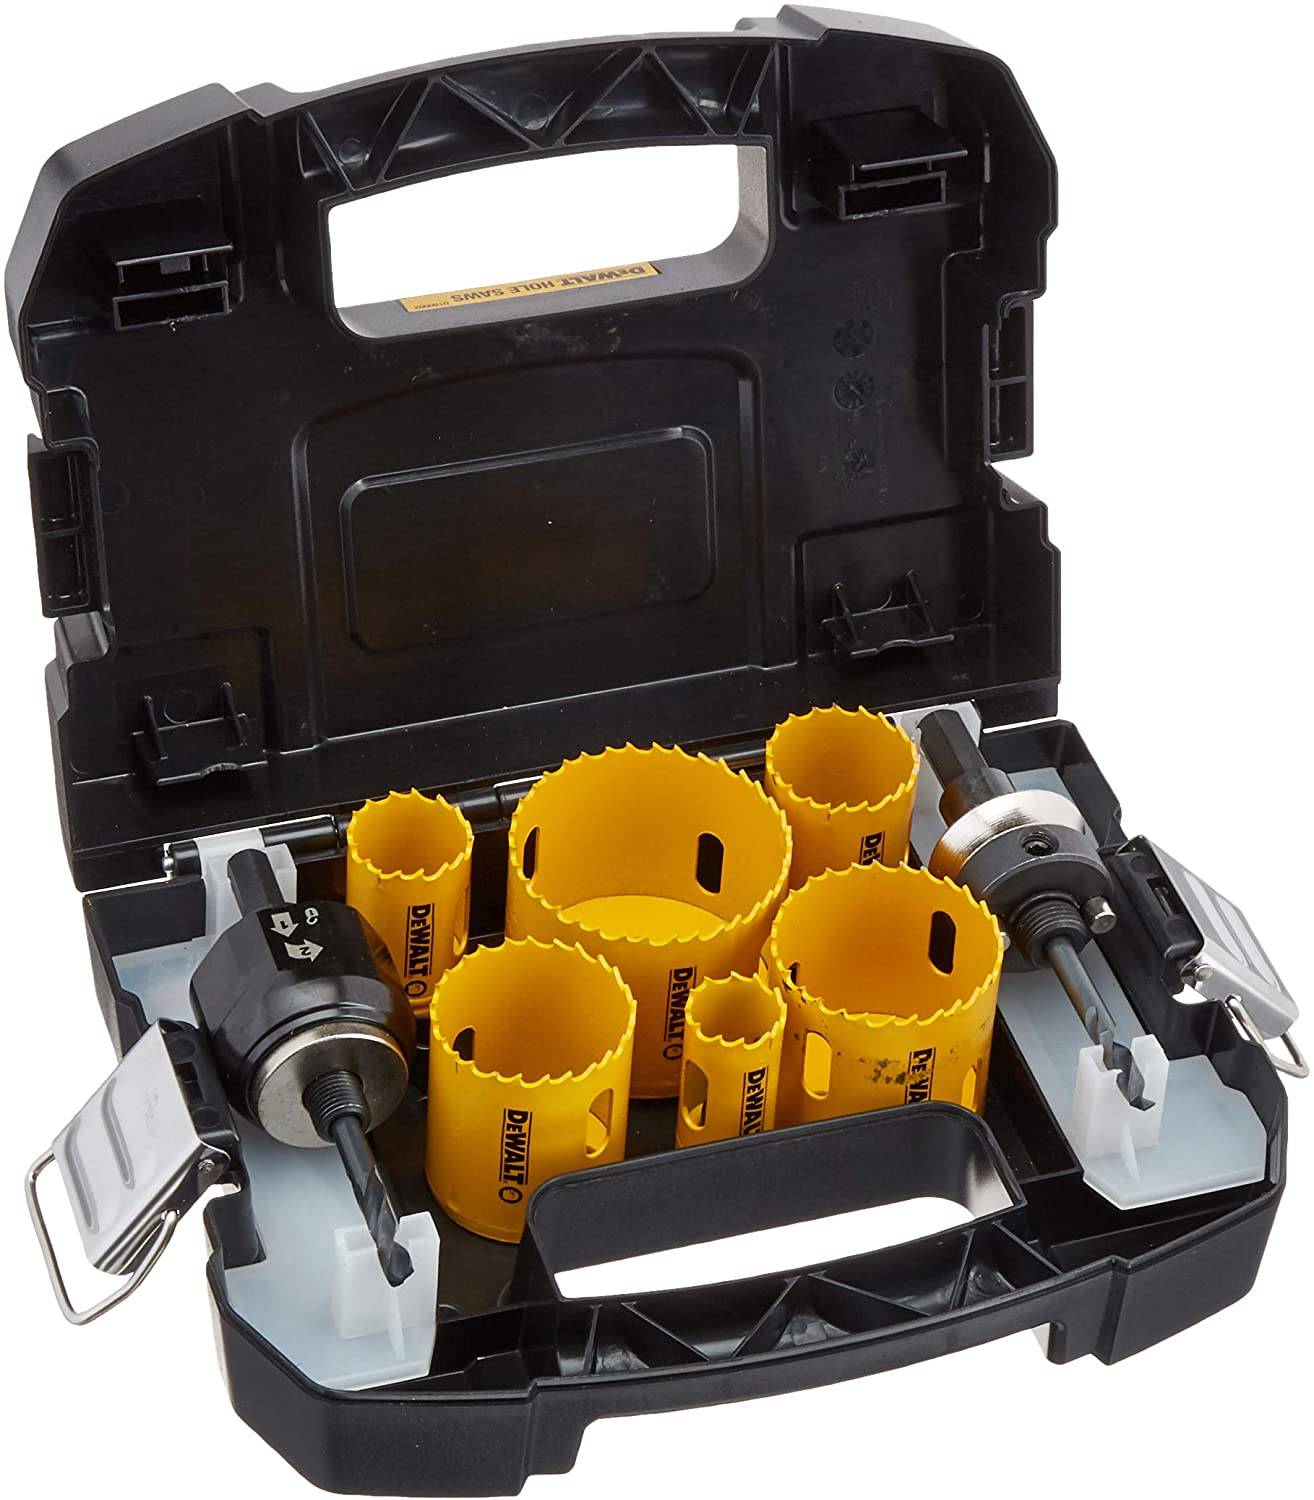 6. Dewalt D180002 Hole Saw Kit